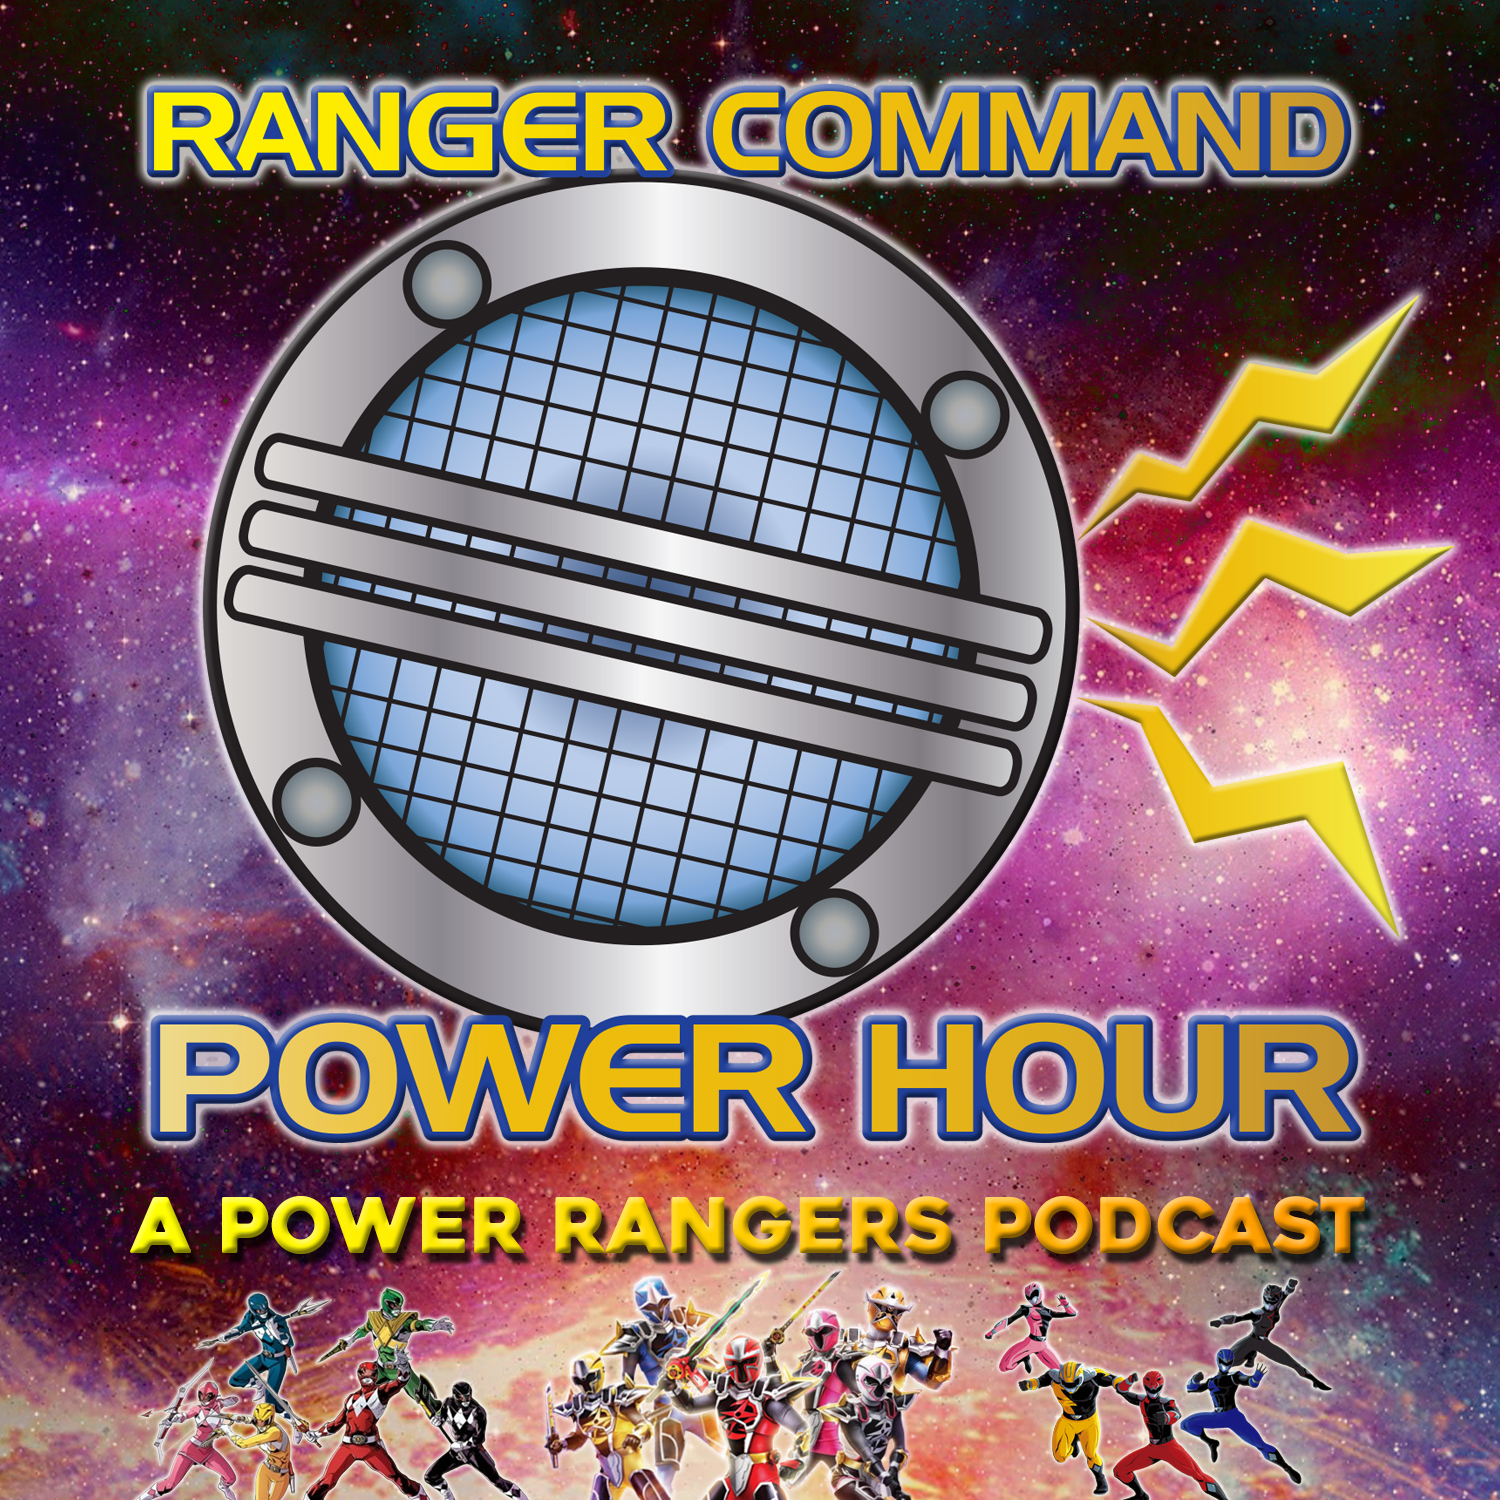 Ranger Command Power Hour